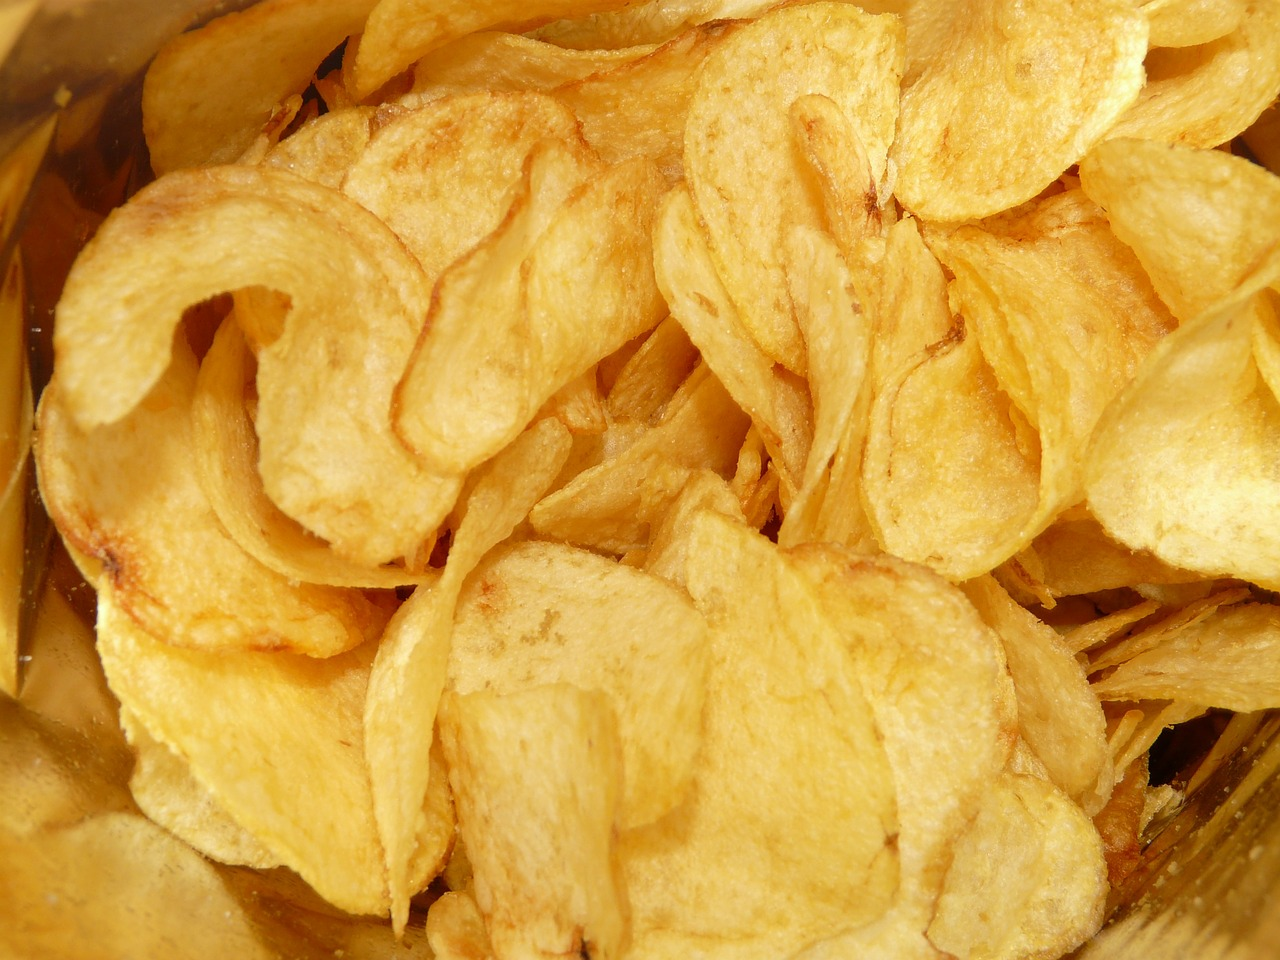 Weekly economic new roundup and misleading chips packaging